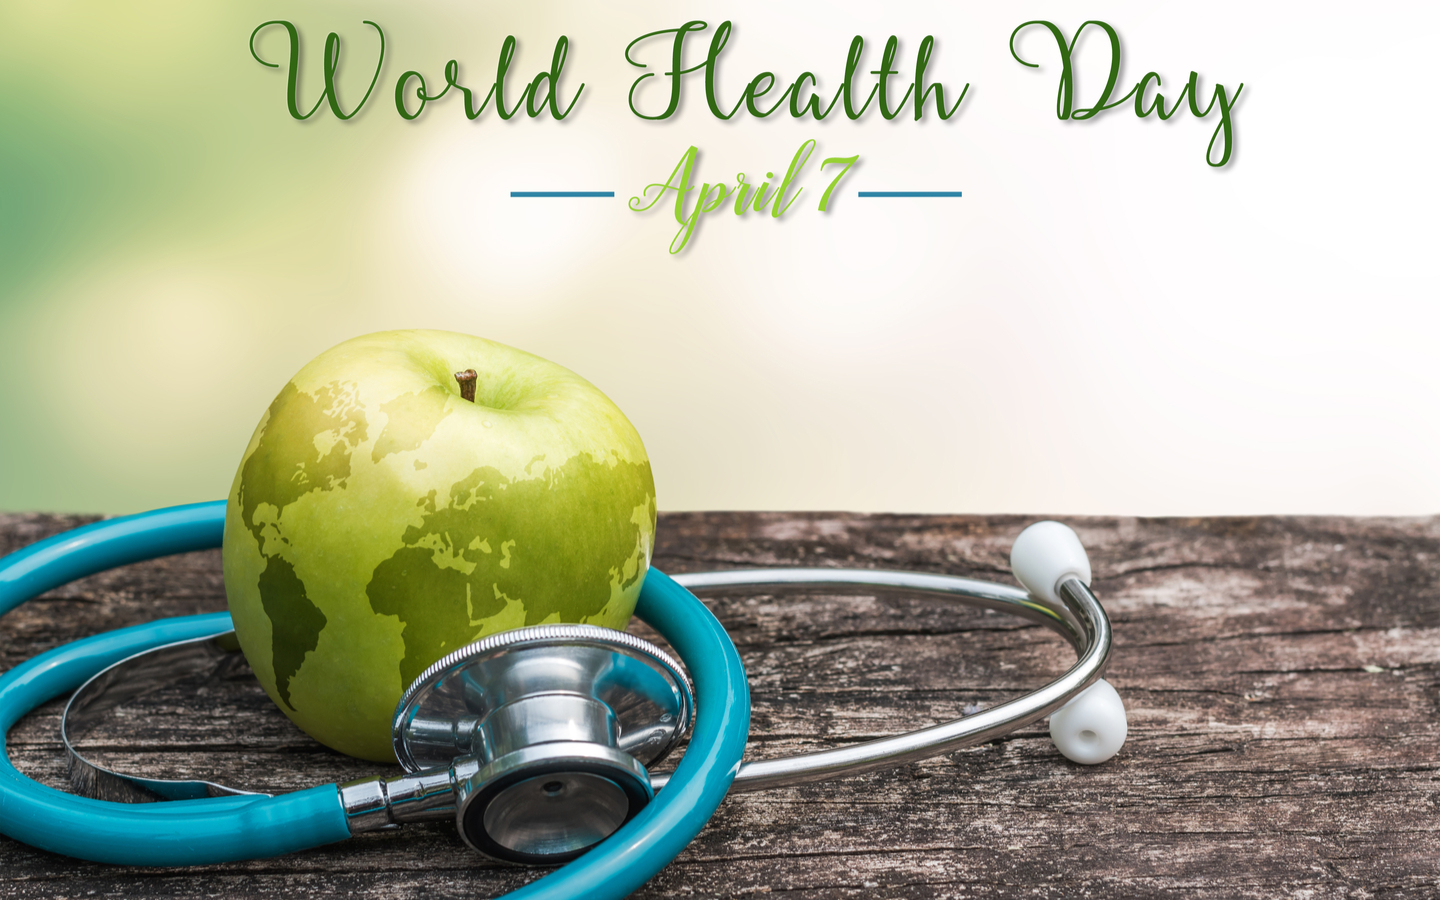 World Health Day gets celebrated on 7th April every year